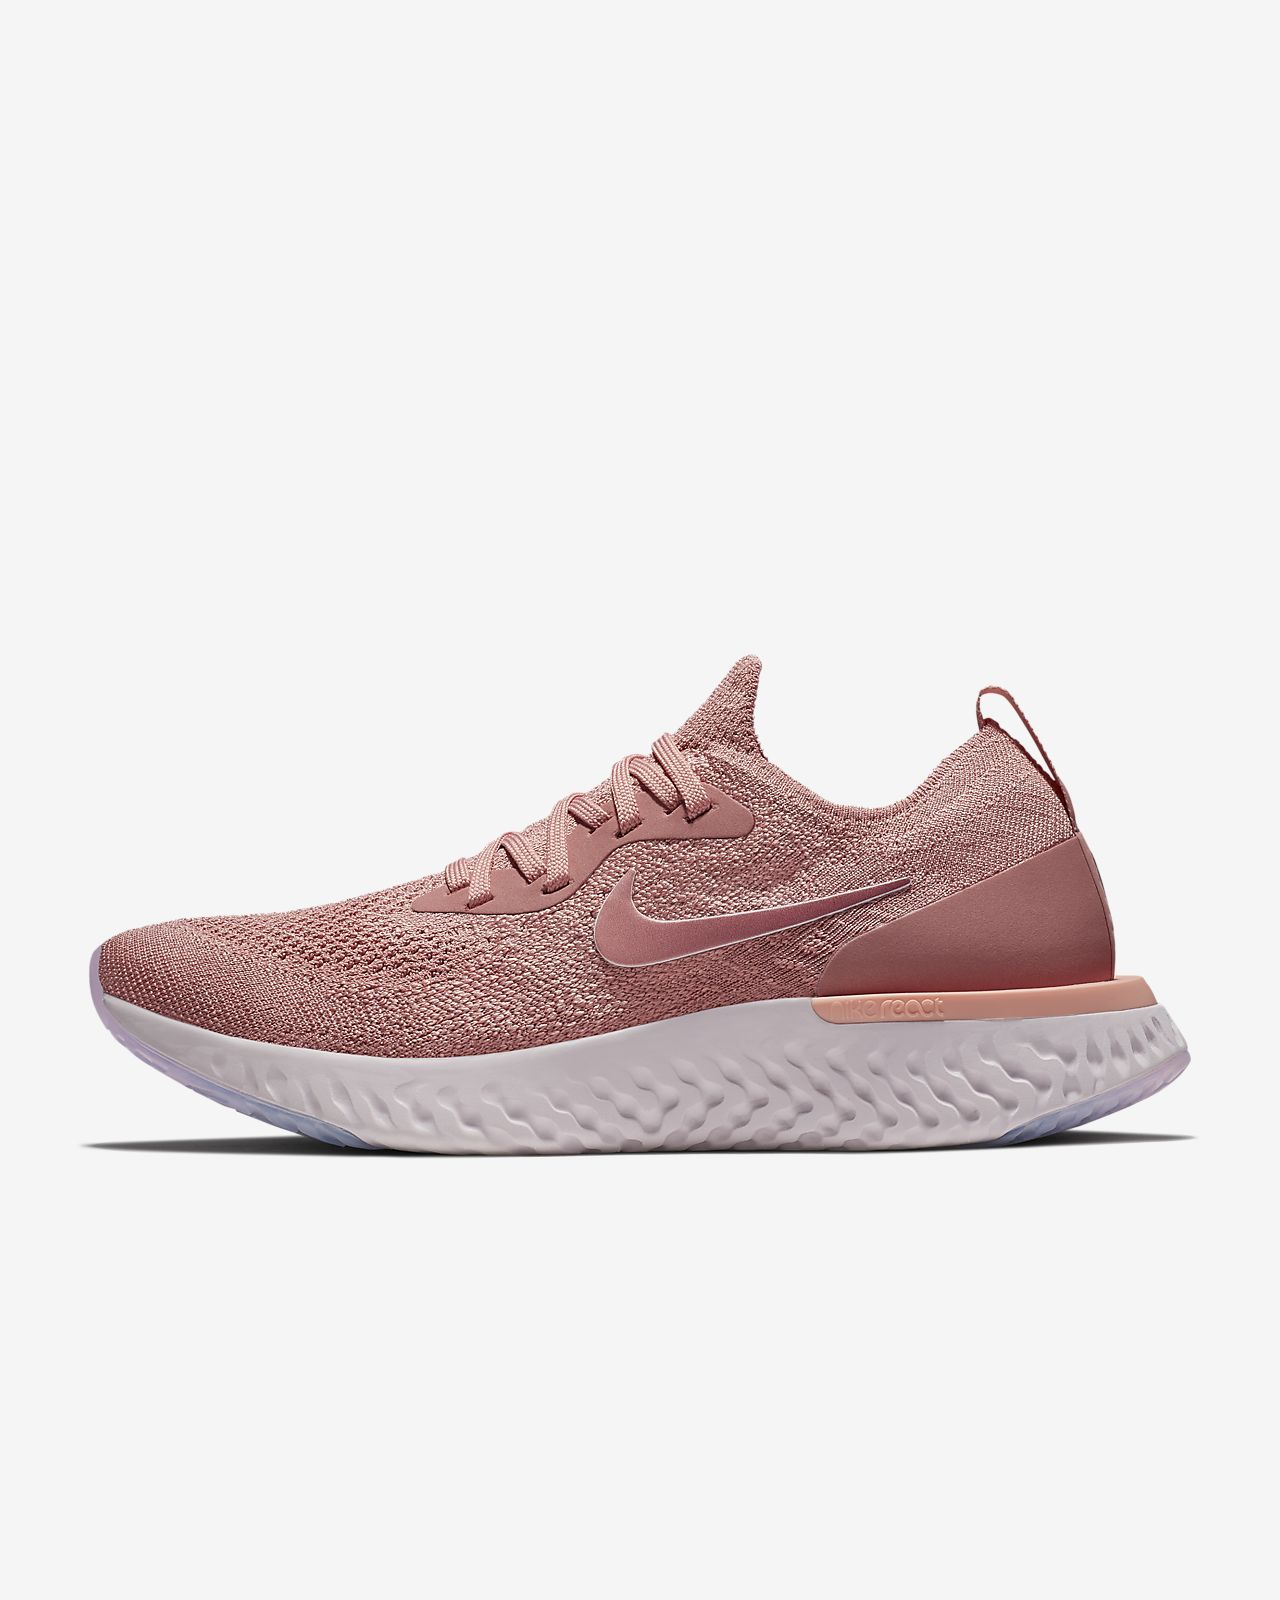 92f8f631a7953 Nike Epic React Flyknit 1 Women s Running Shoe. Nike.com MY